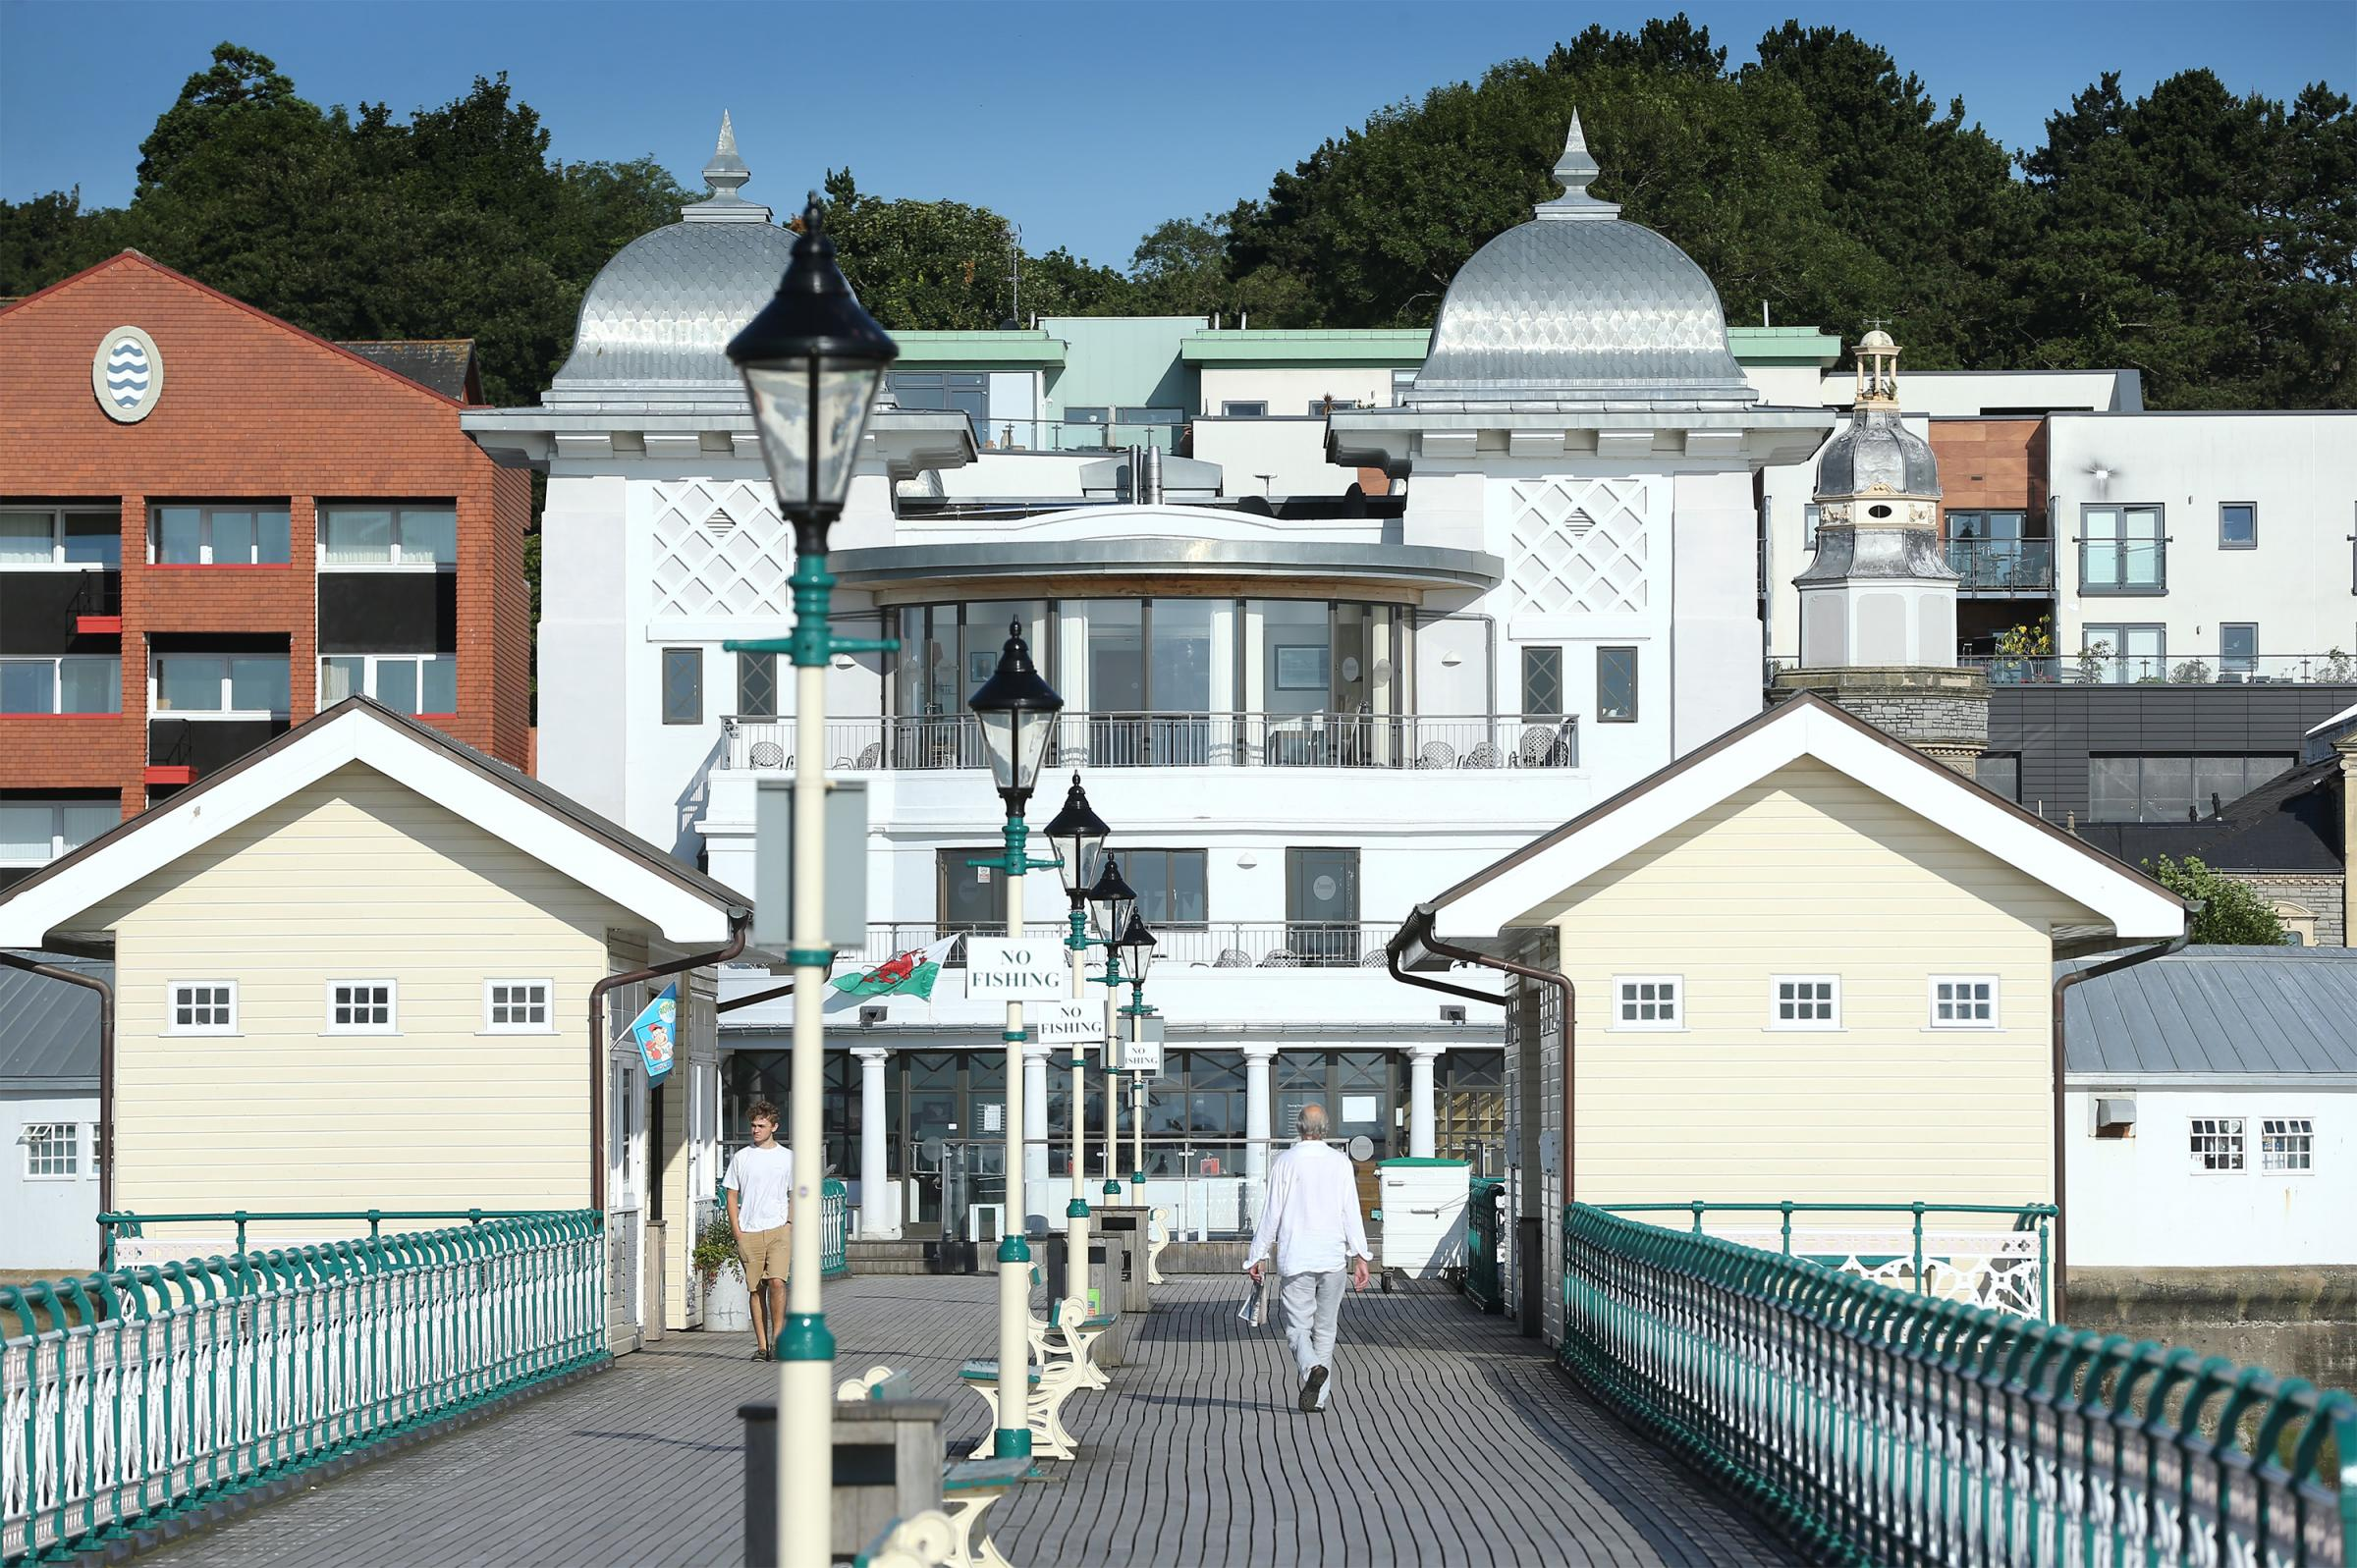 UPDATE: Pier pavilion cinema set to be used for pop up cinemas and film clubs in future as PACL announces its plans for the building | Penarth Times